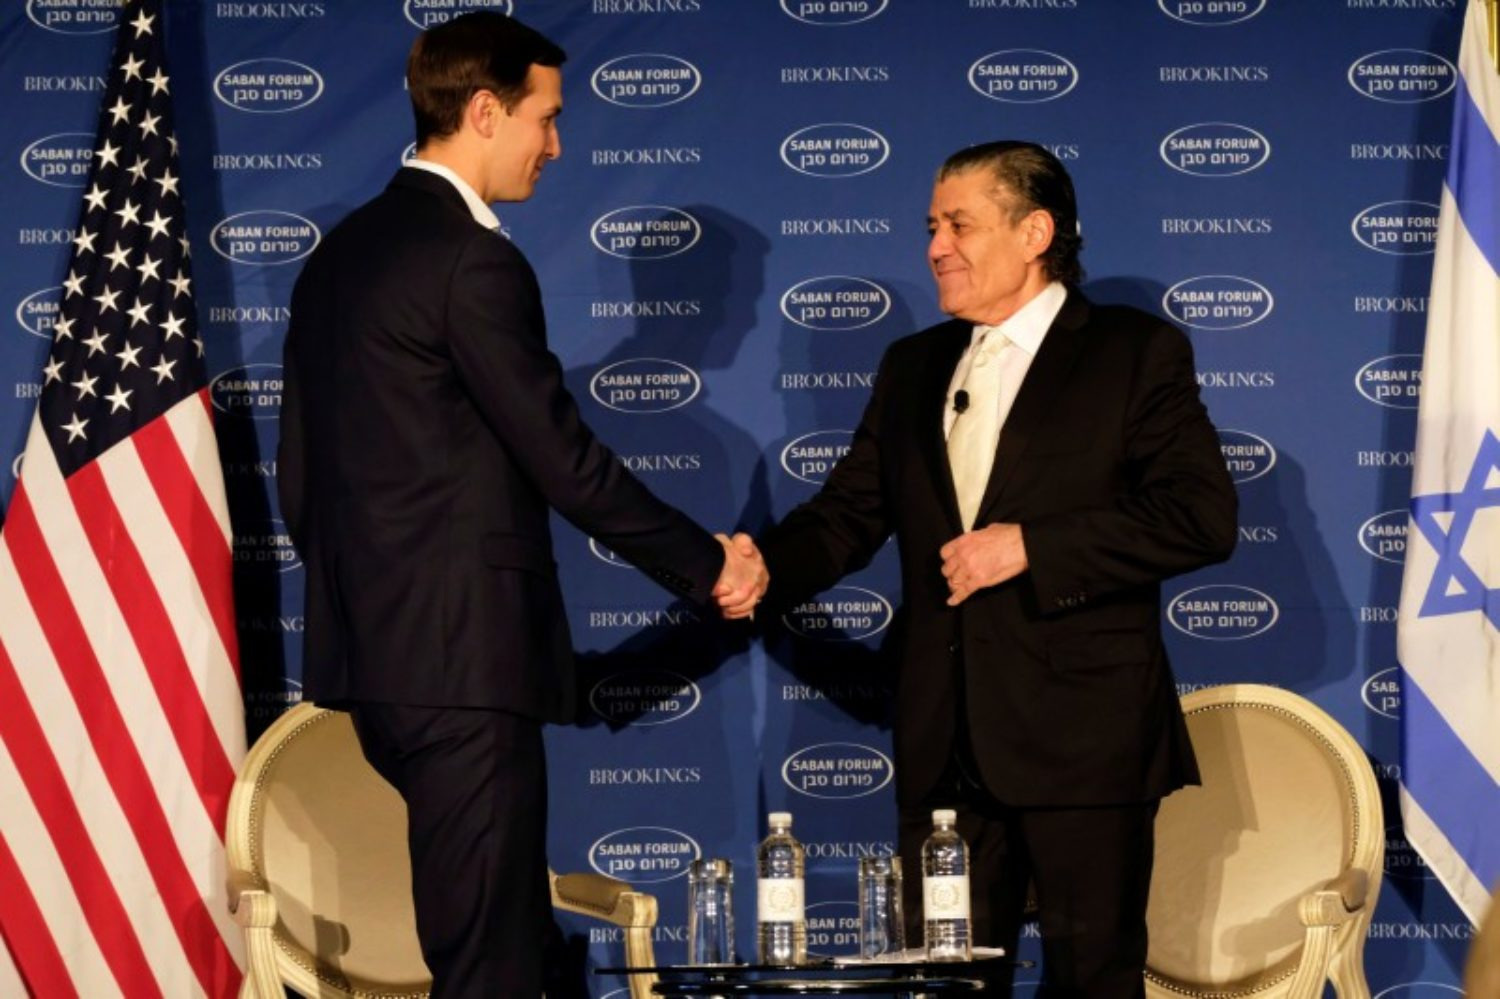 White House senior adviser Jared Kushner, shakes hands with Haim Saban, before discussing the Trump administration's approach to the Middle East region at the Saban Forum in Washington, U.S., December 3, 2017. REUTERS/James Lawler Duggan